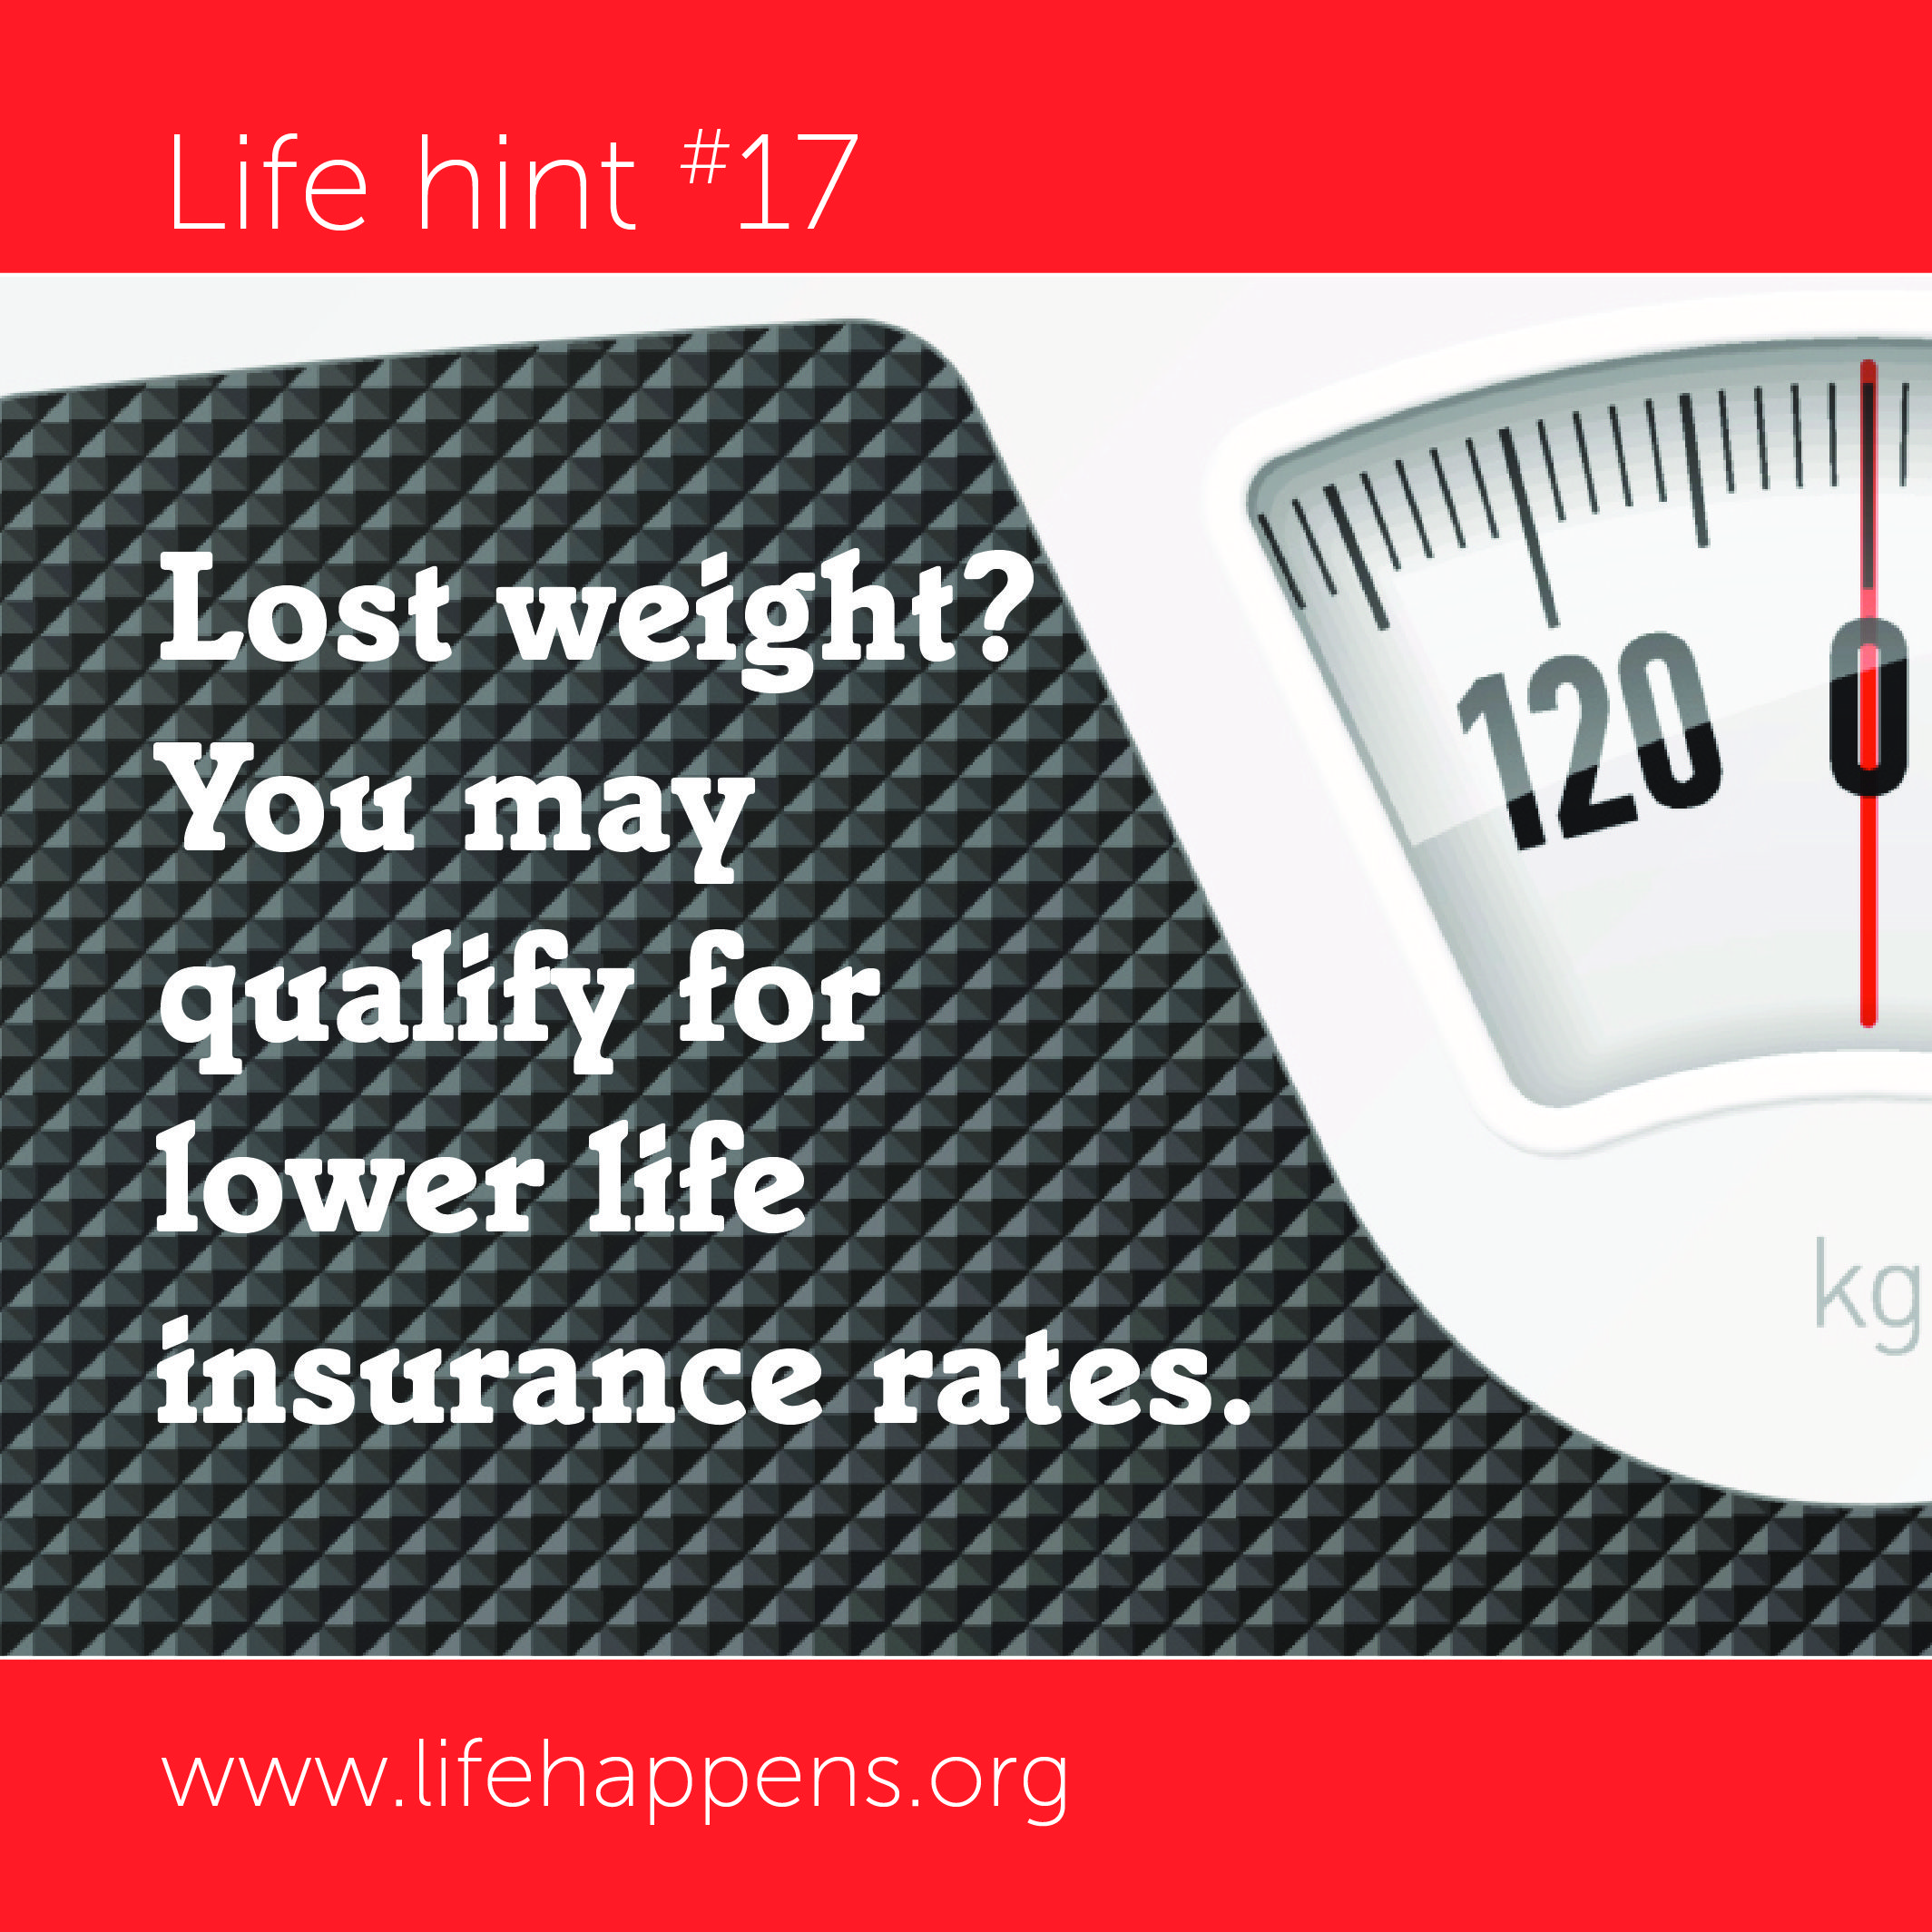 Life hint 17 Lost weight? You may qualify for lower life